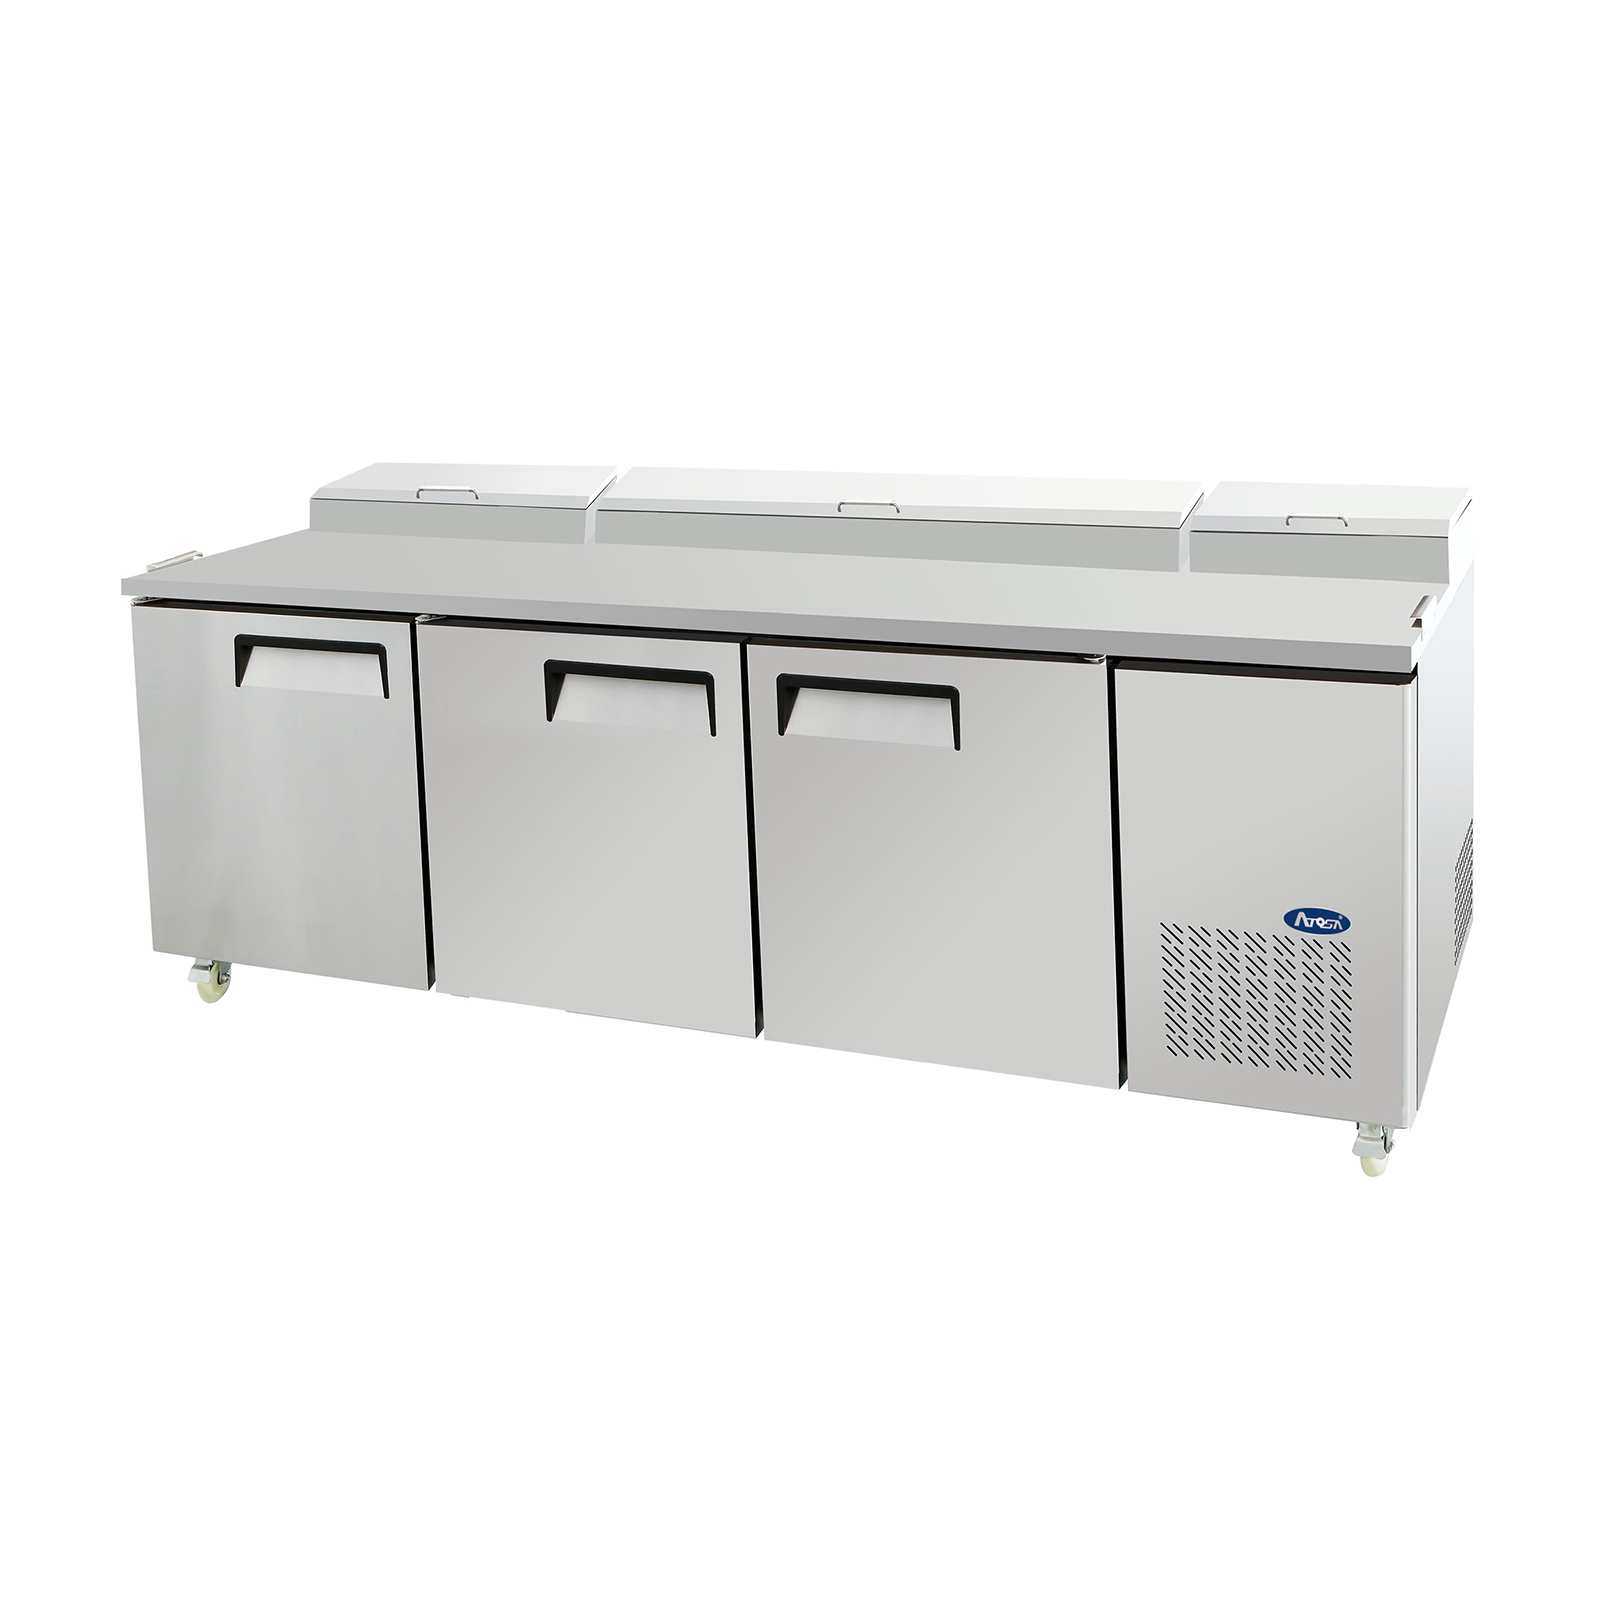 Atosa USA MPF8203GR refrigerated counter, pizza prep table